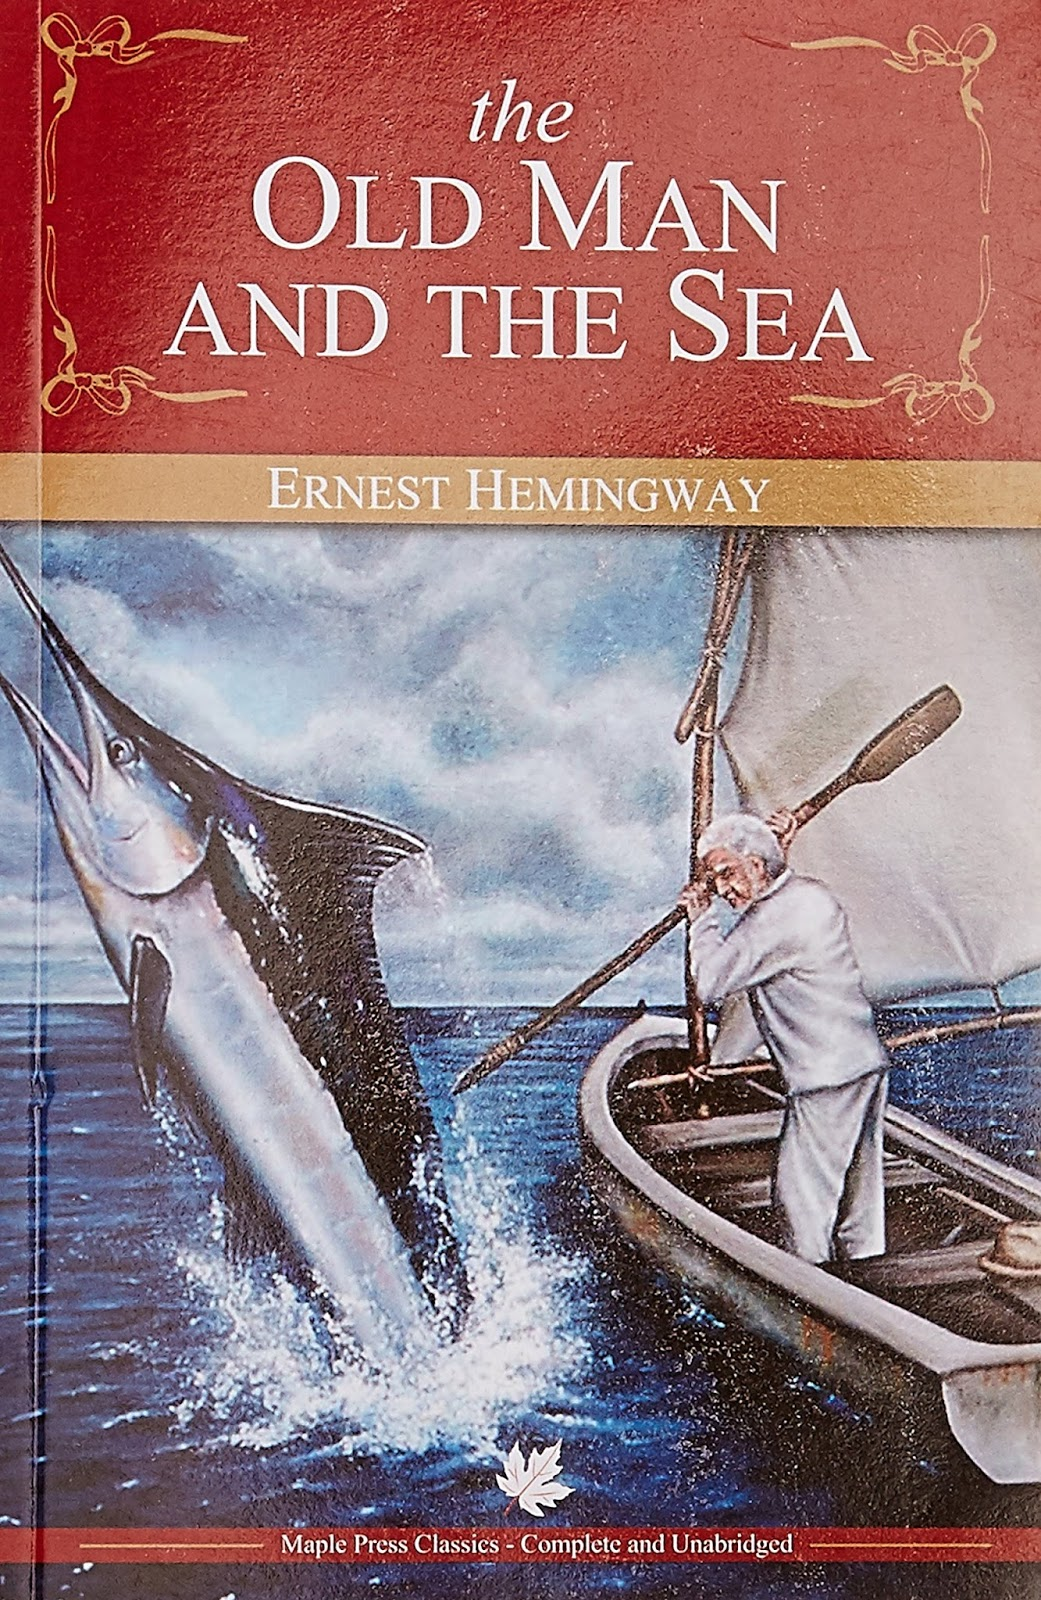 a review of ernest hemingways award winning book the old man and the sea The old man and the sea ernest hemingway table of contents be book-smarter visit b&n to buy and rent textbooks, and check out our award-winning tablets and.